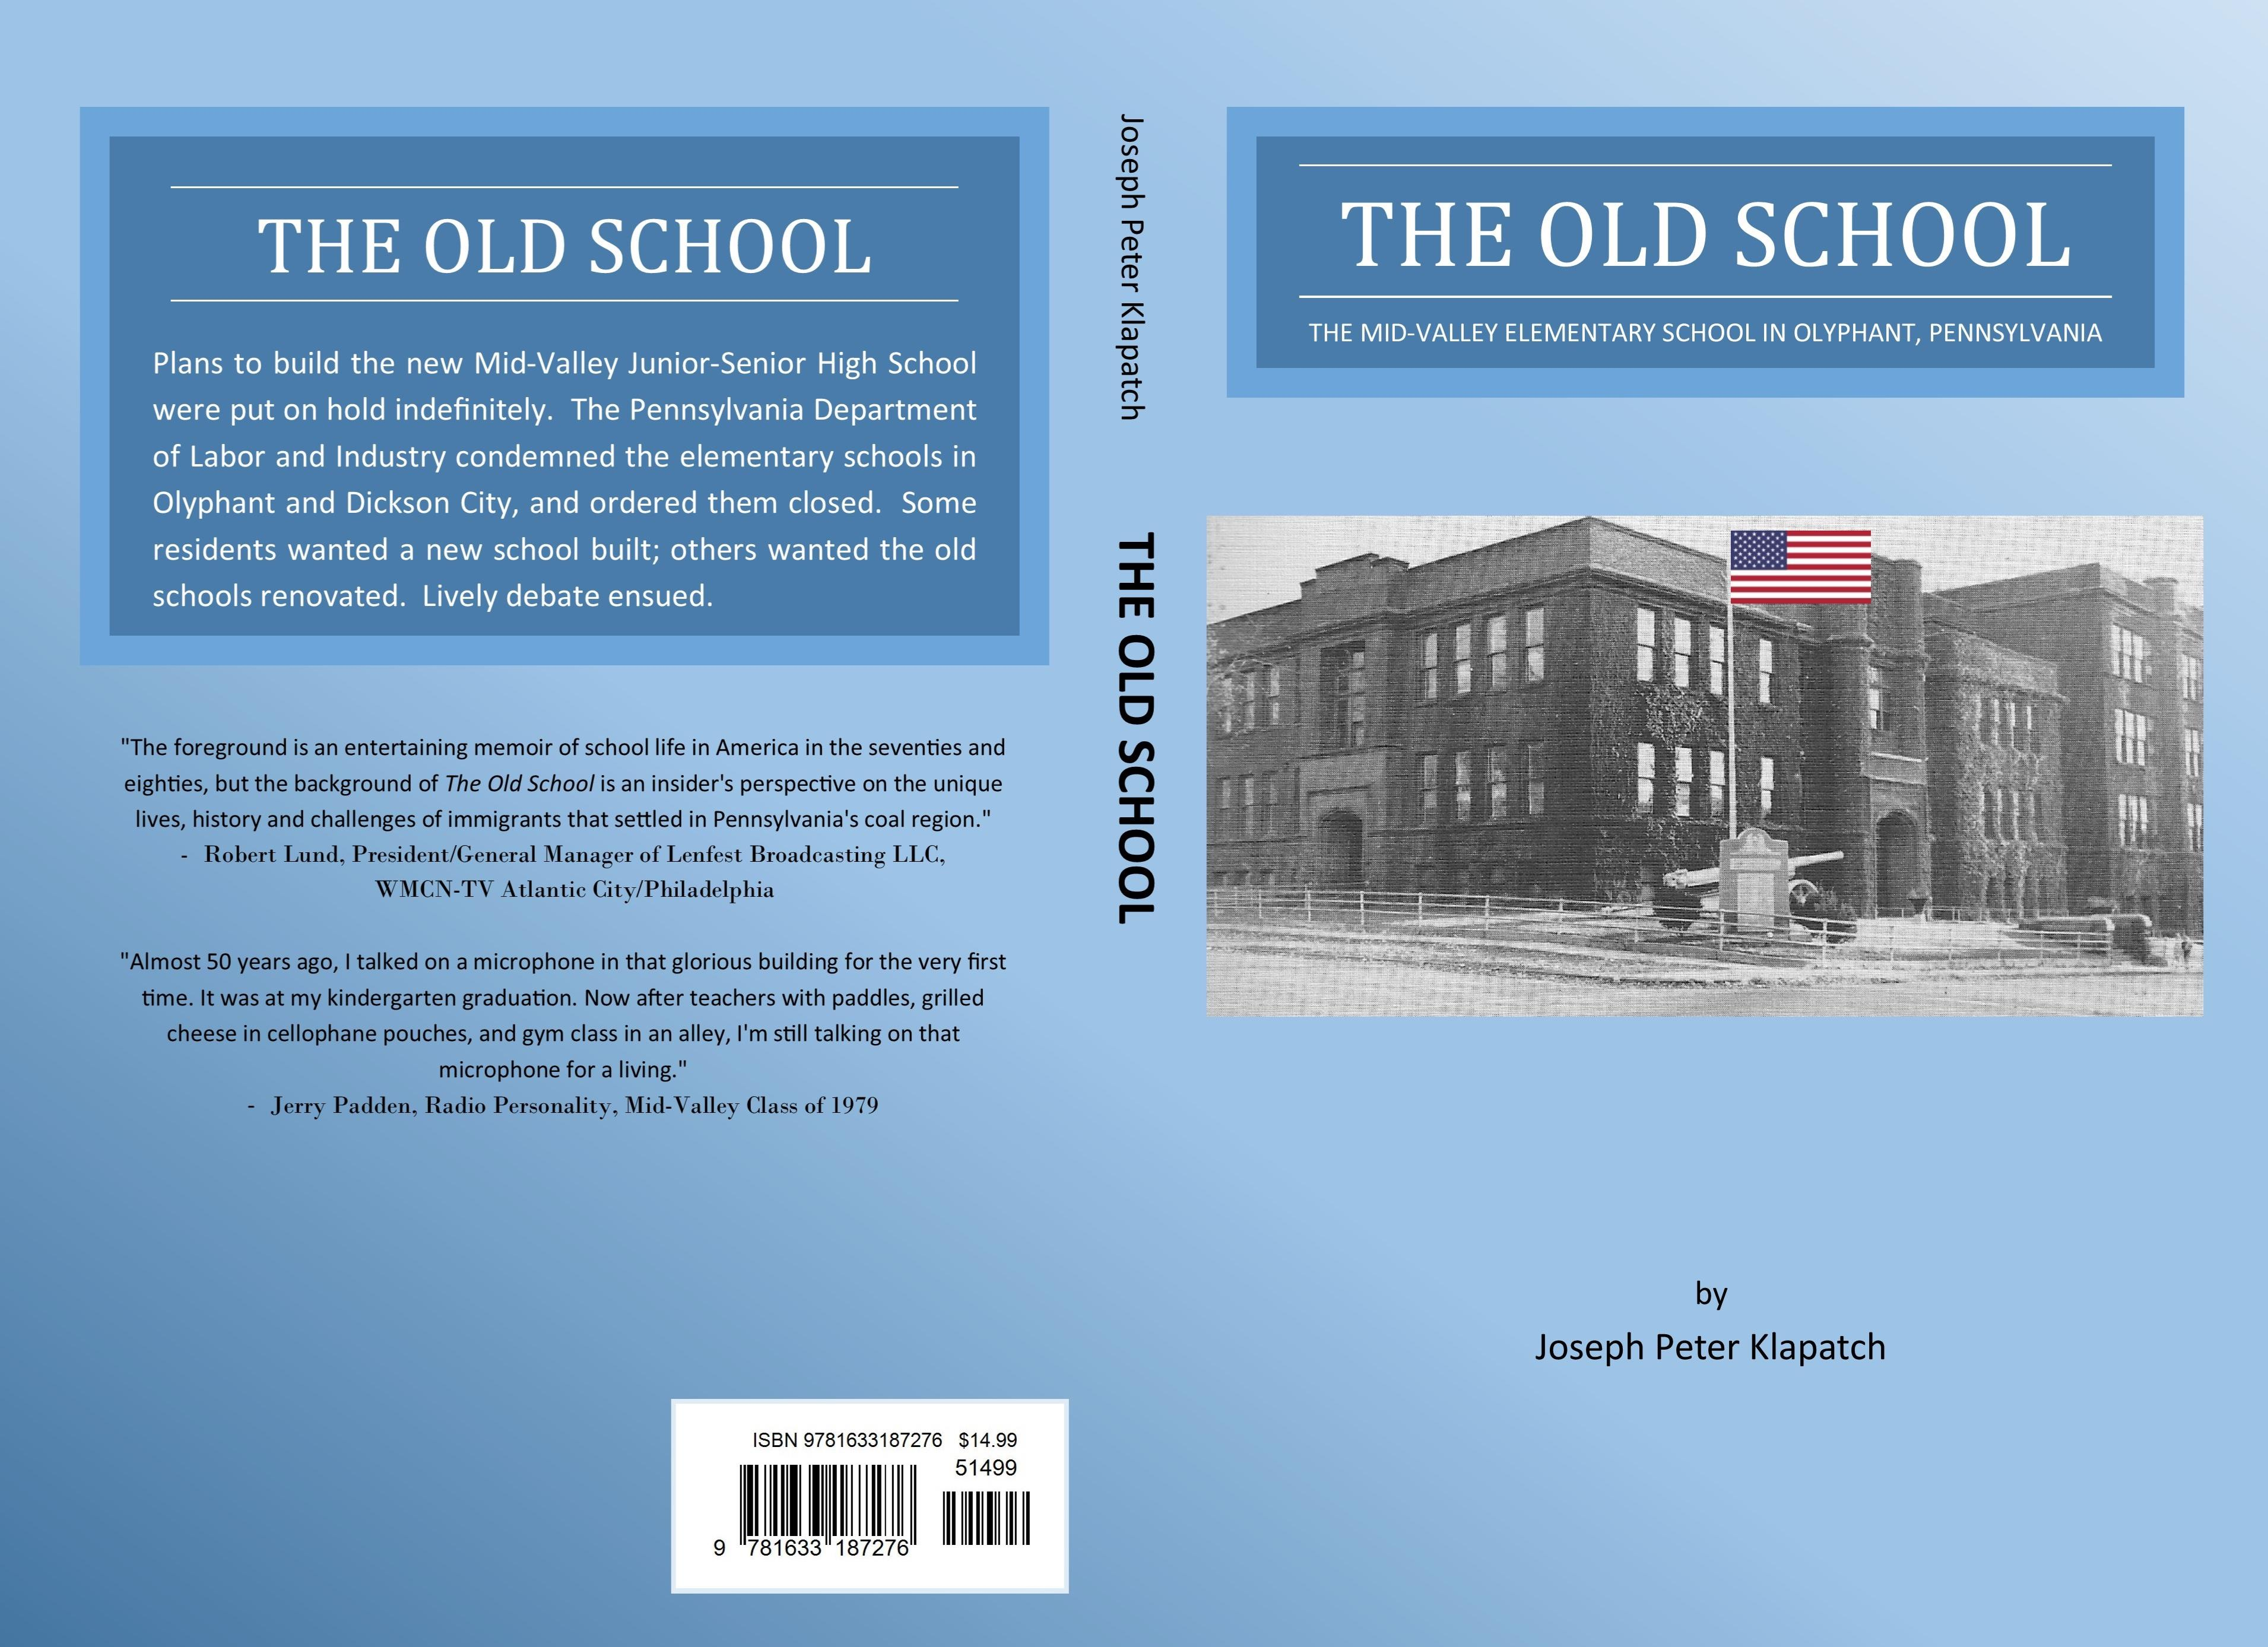 The Old School cover image